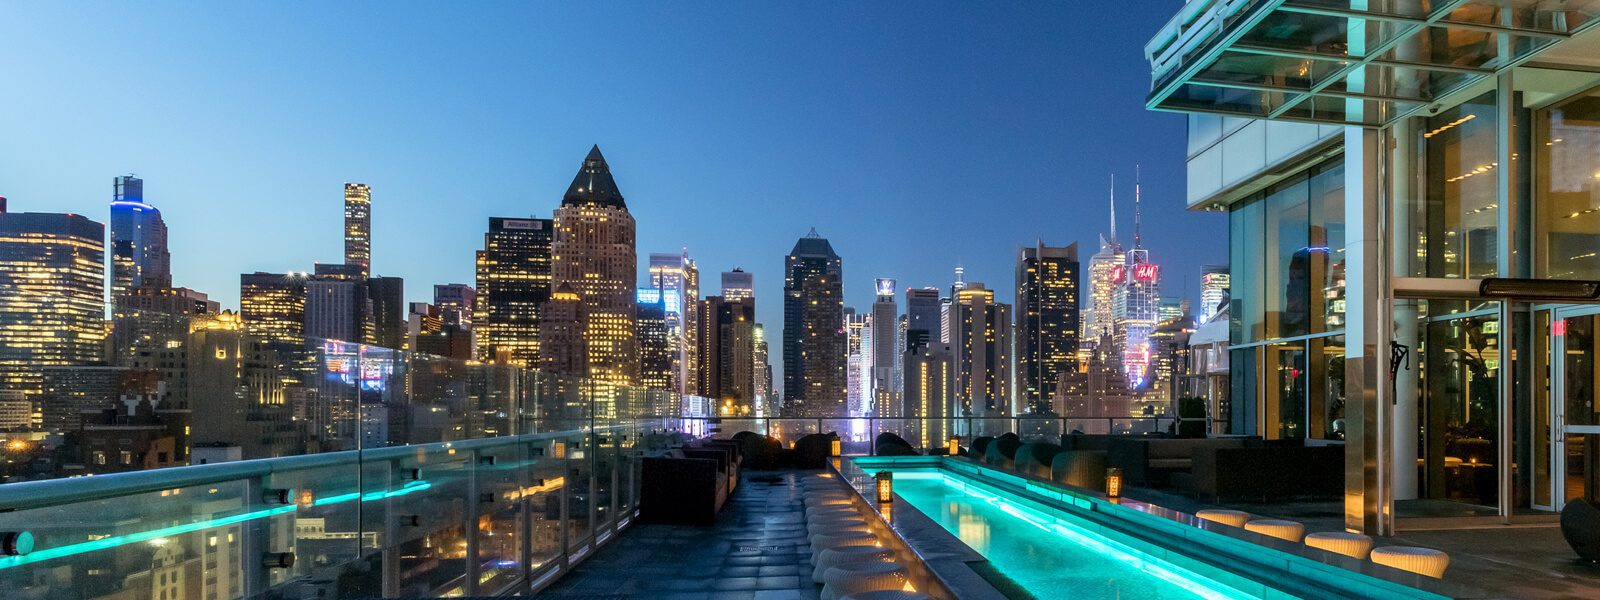 Panorama of Manhattan nighttime skyline from view of terrace with reflecting pool illuminated.